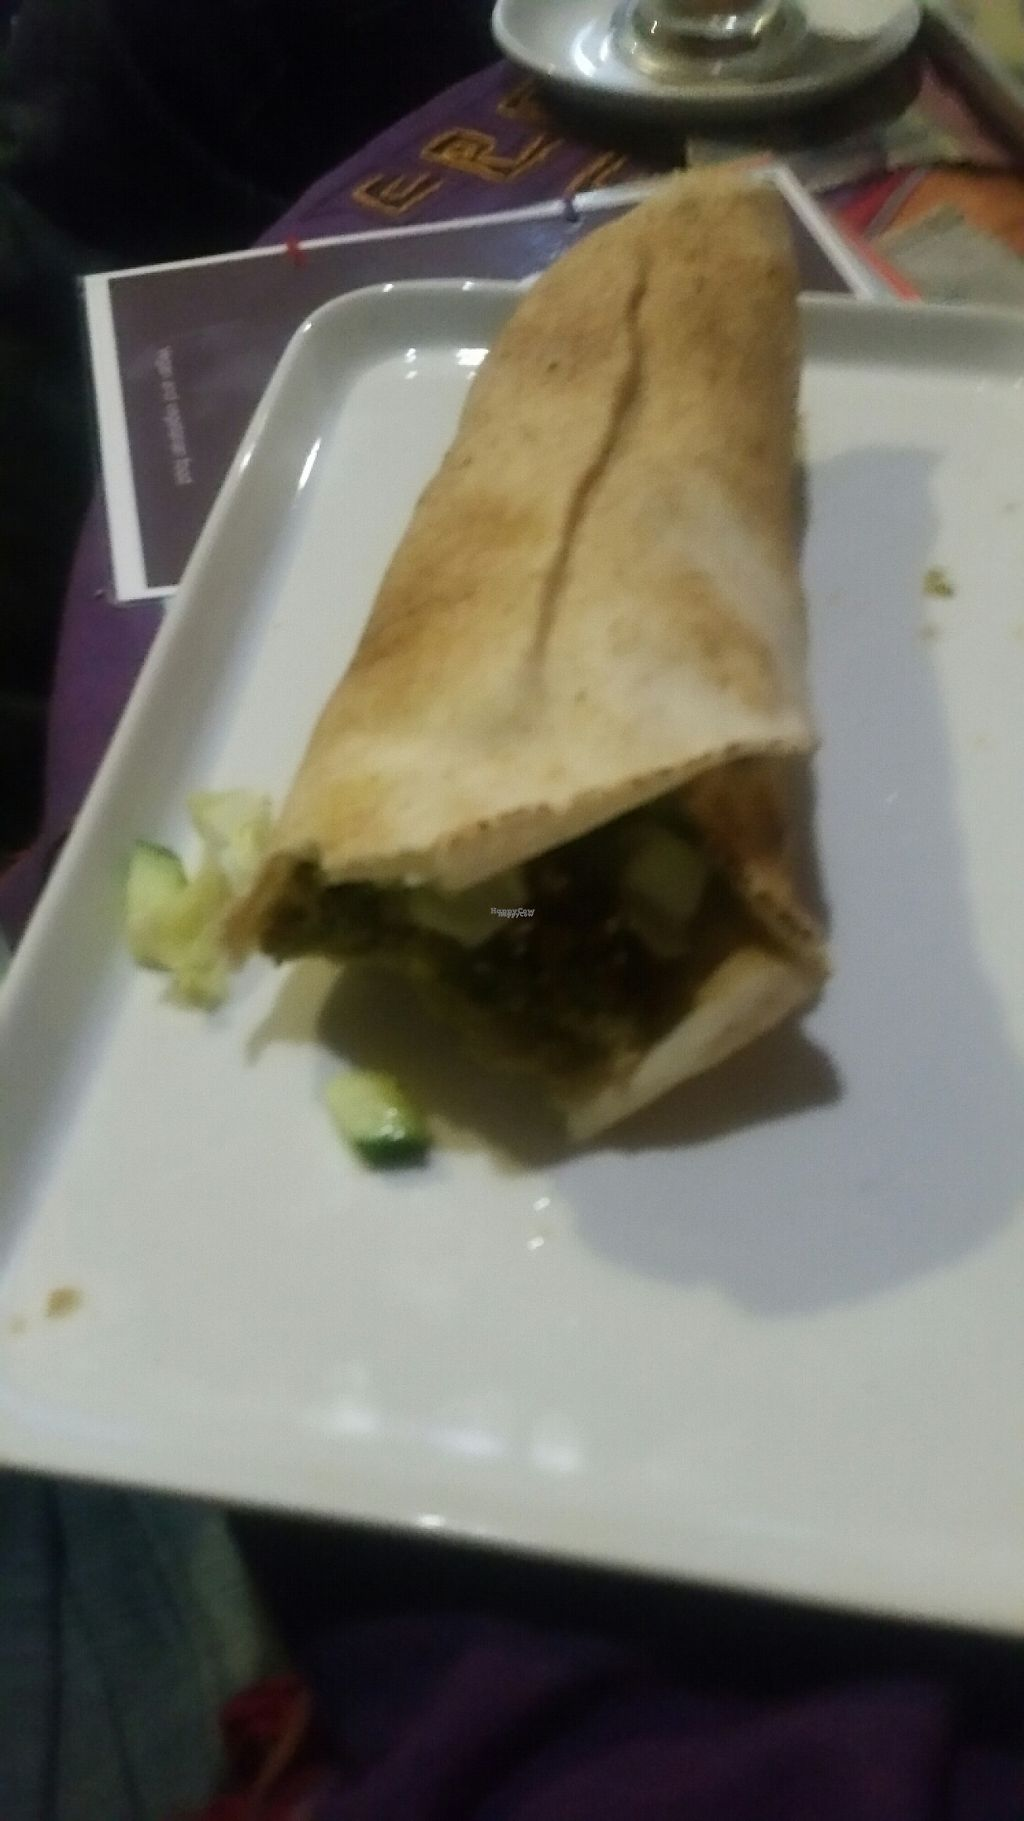 """Photo of Cafe Shanti  by <a href=""""/members/profile/KatieBatty"""">KatieBatty</a> <br/>Falafel and hummus wrap <br/> February 13, 2017  - <a href='/contact/abuse/image/63874/226225'>Report</a>"""